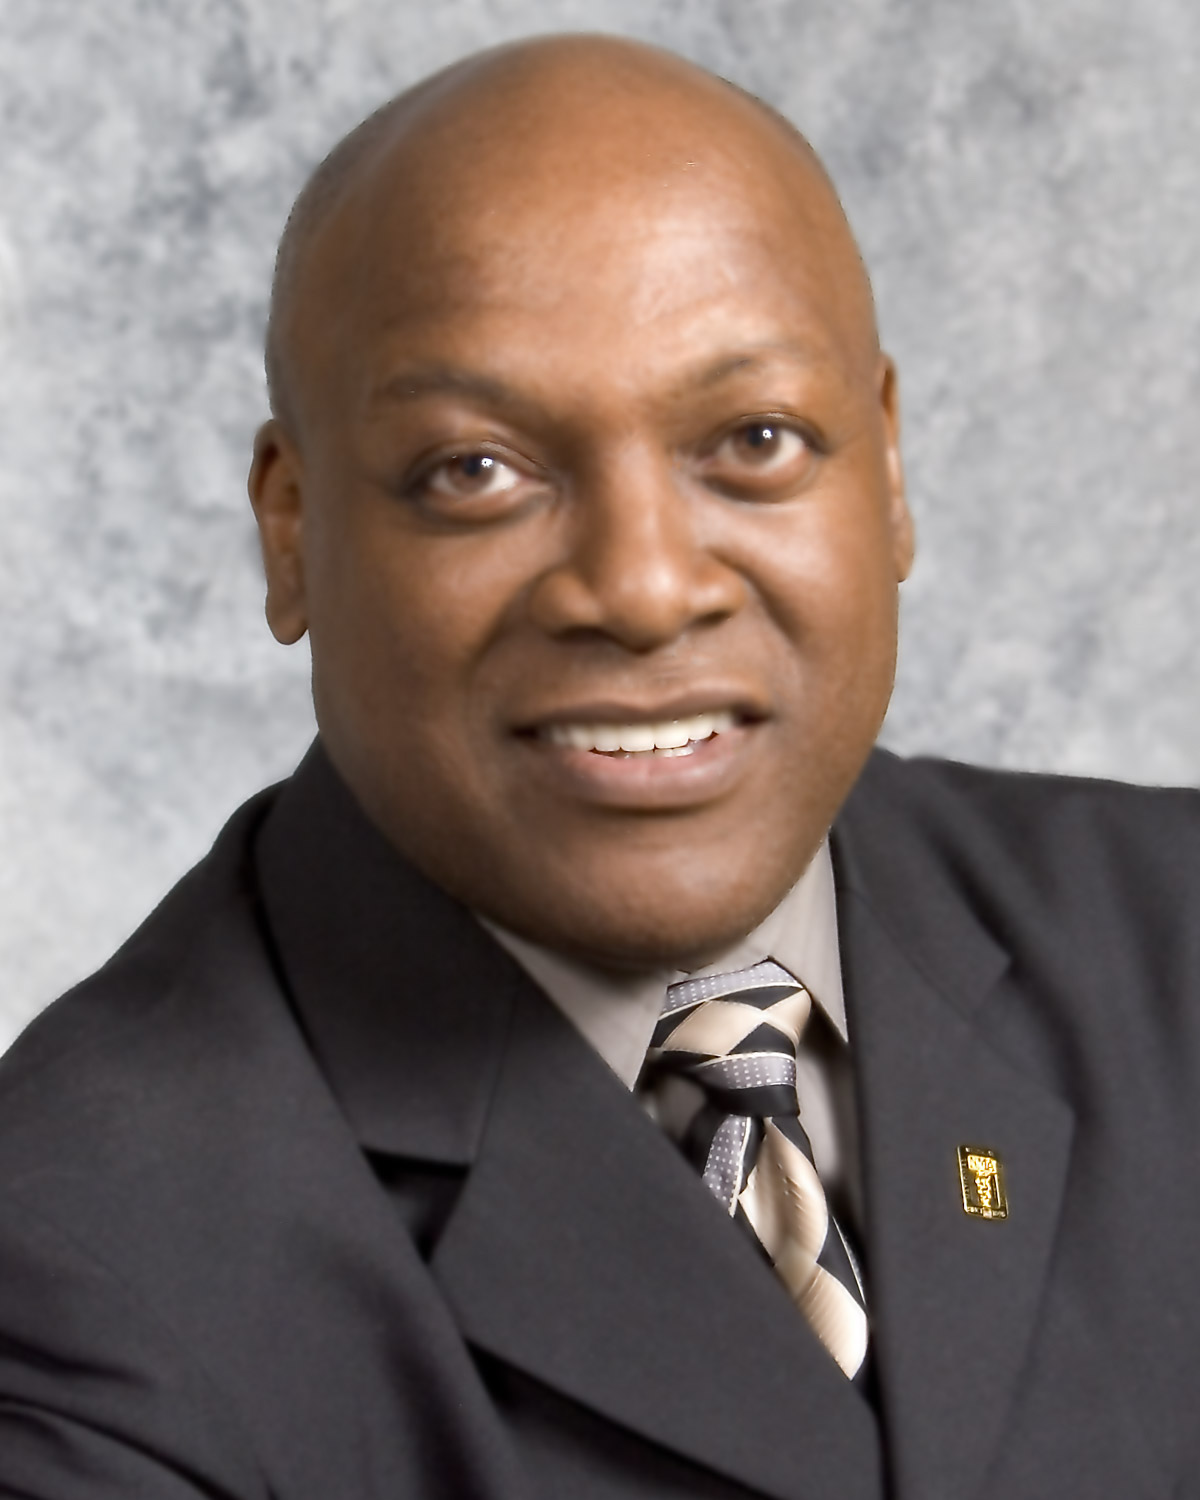 Winston Price, MD, is an active member of the South Georgia healthcare community and aims to address healthcare disparities and increase diversity in physicians